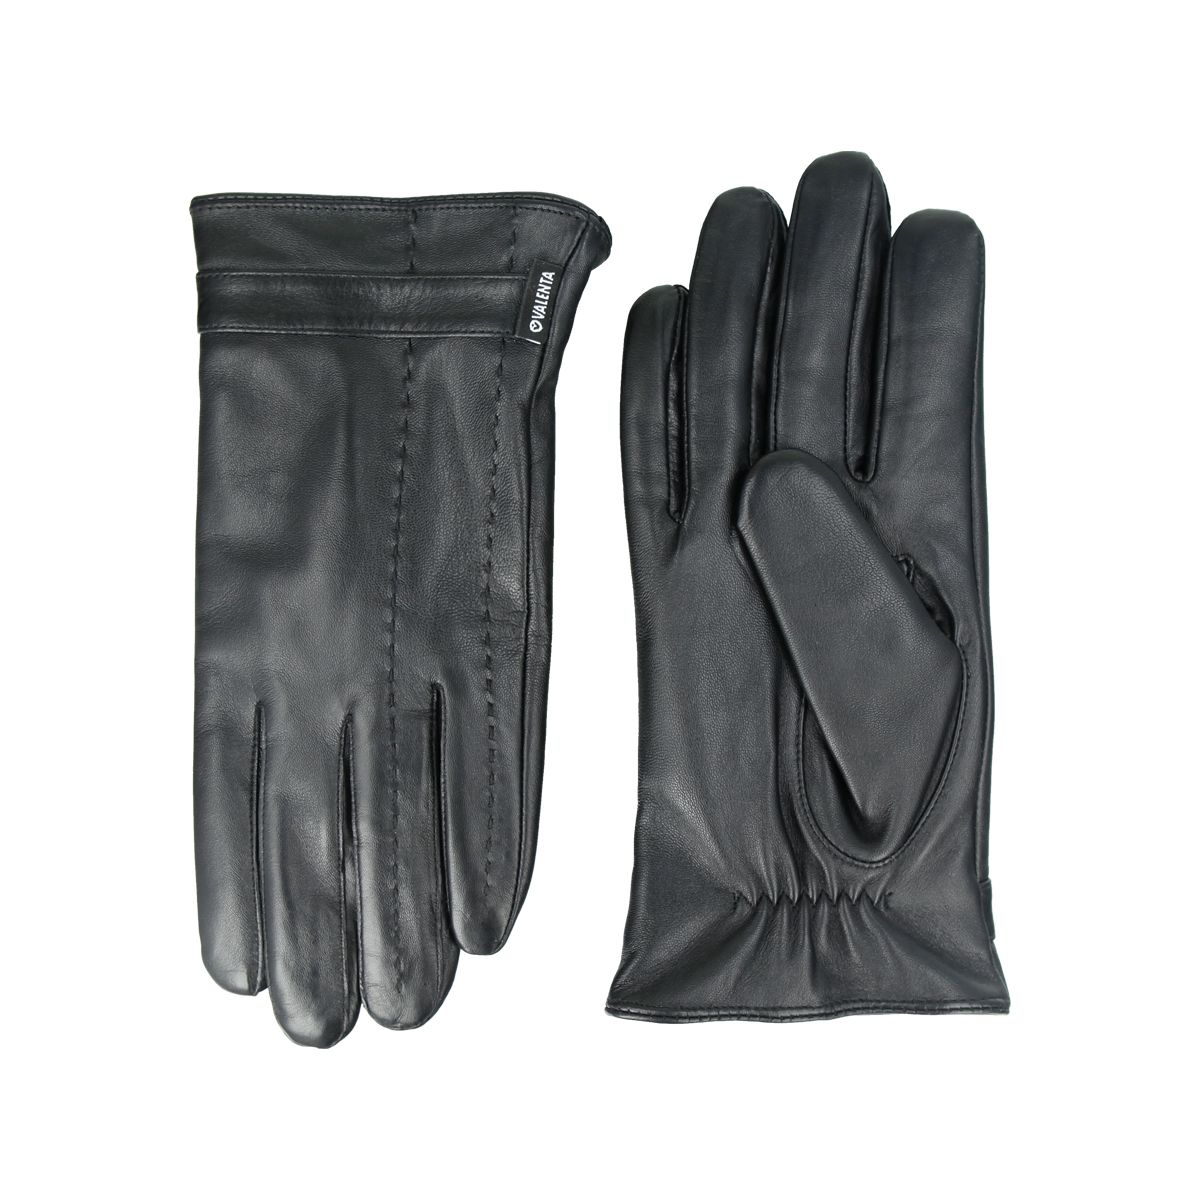 smart gloves men brut xxl